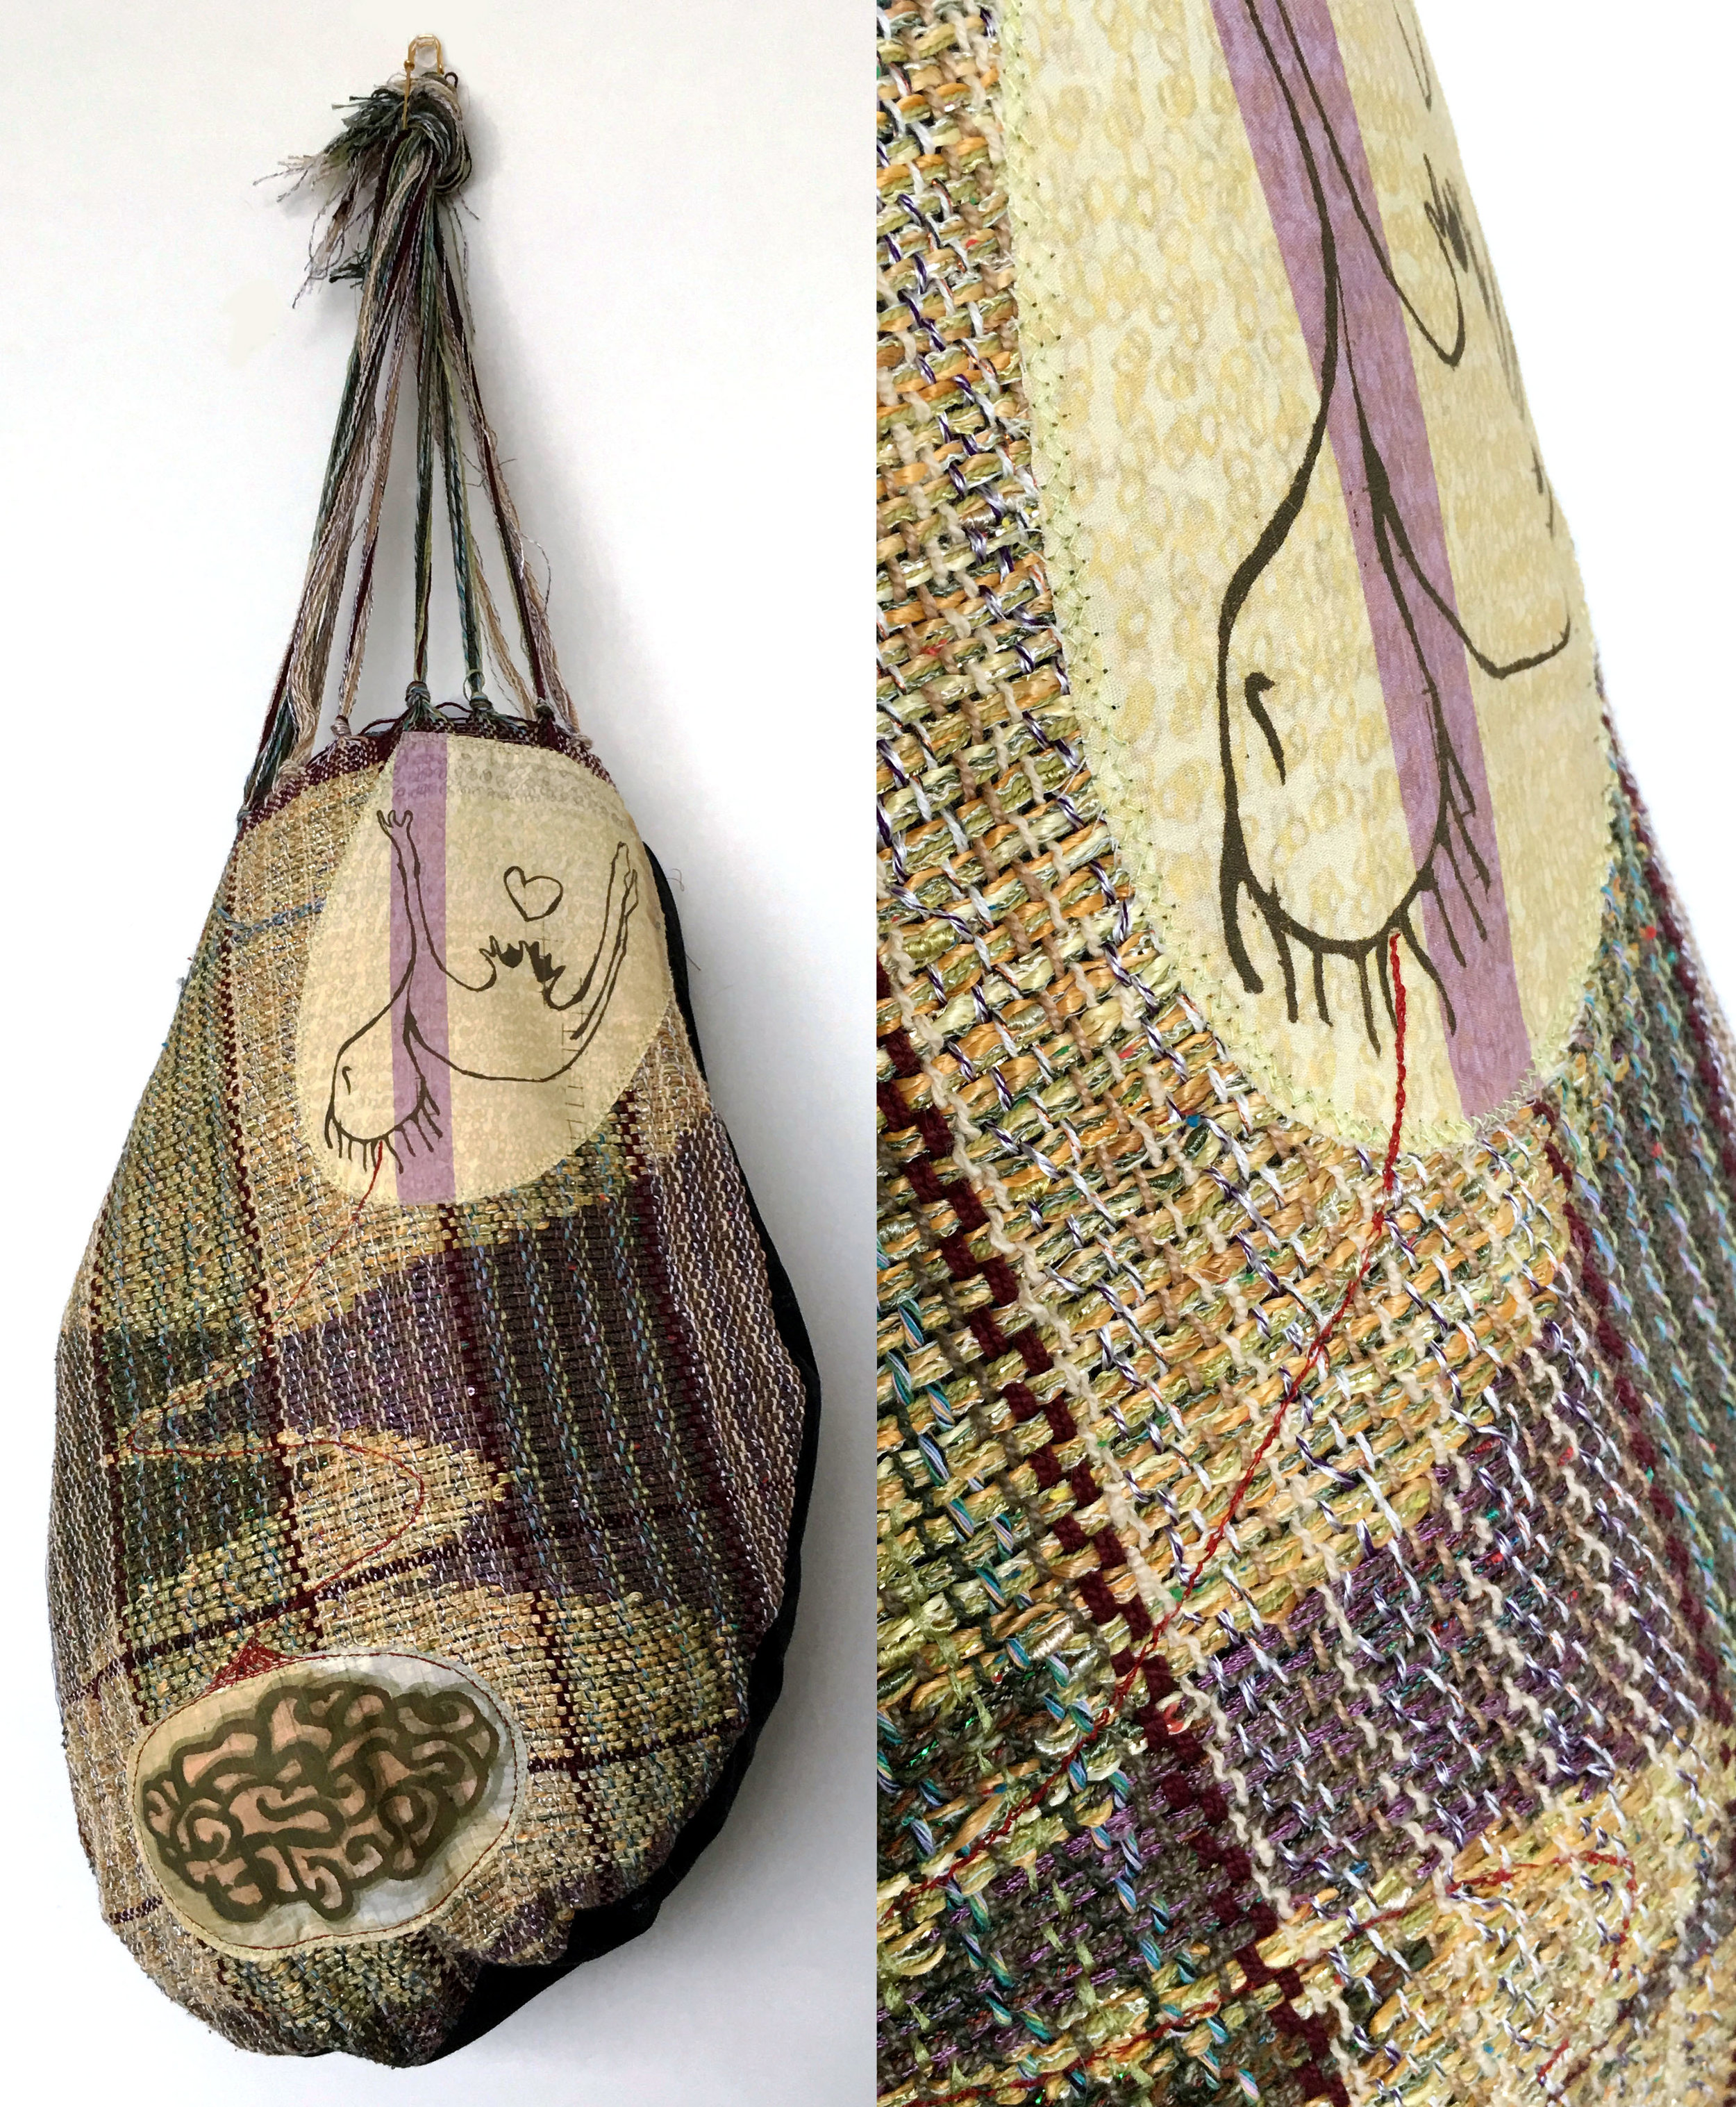 """Brain Drain  h: 28"""" x w: 10"""" x d: 10"""" hand-woven and machine-made fabric, embroidery, inkjet prints, fleece 2017"""